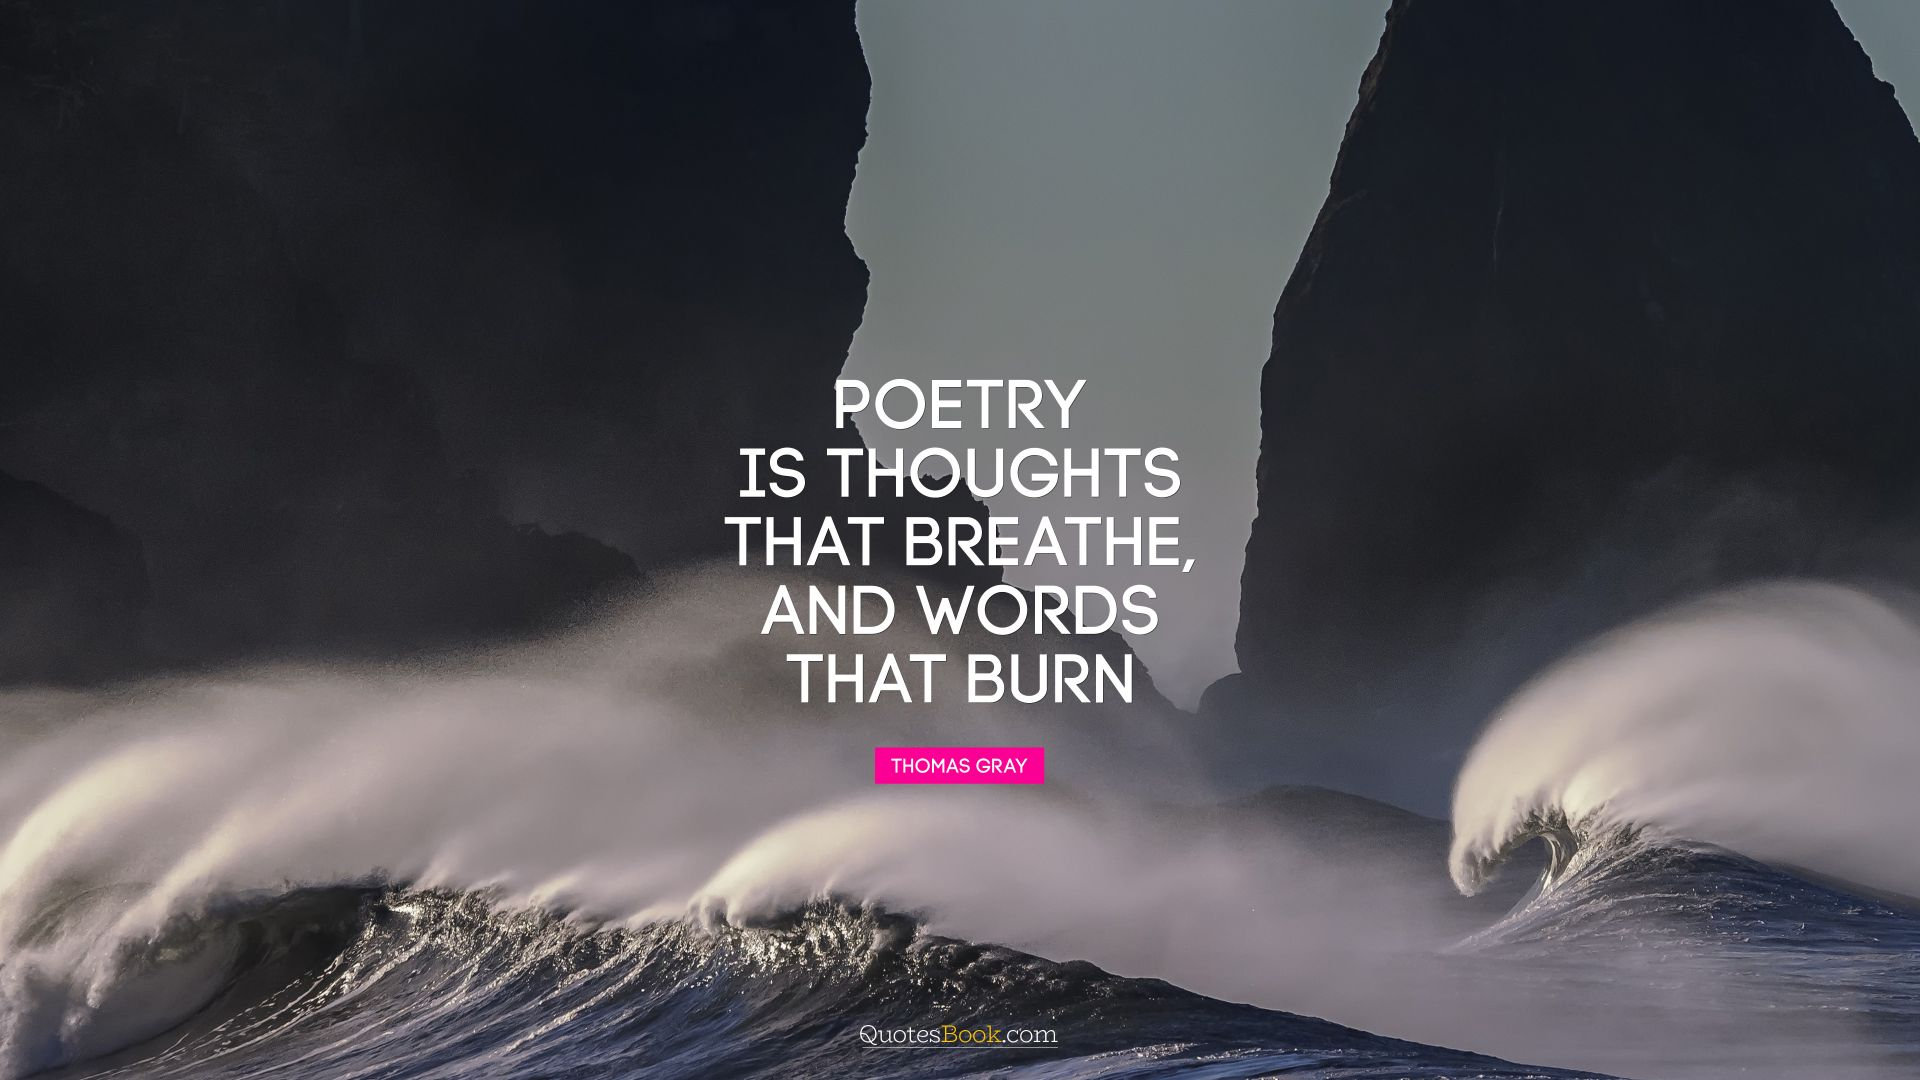 Poetry is thoughts that breathe, and words that burn. - Quote by Thomas Gray